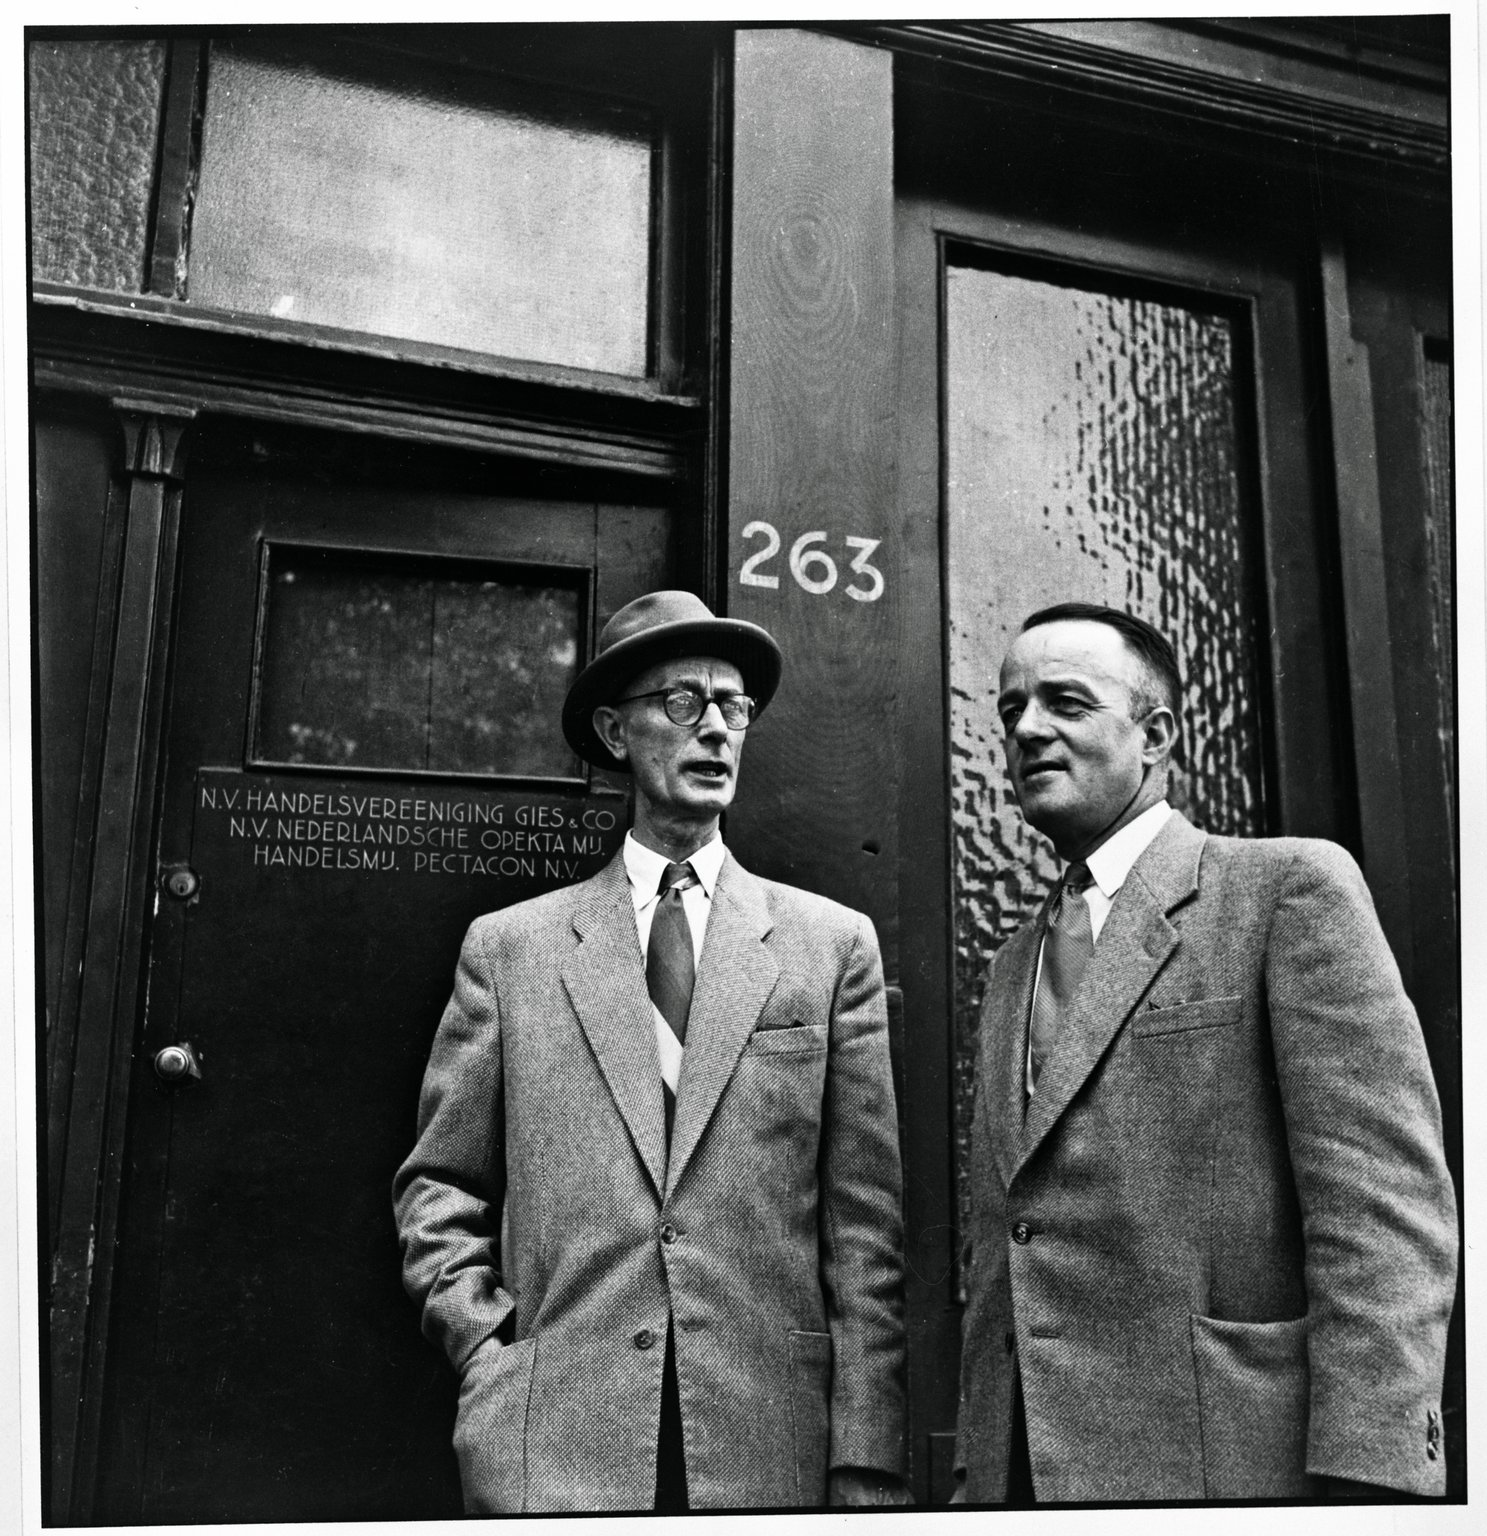 Johannes Kleiman (on the left) and Victor Kugler in front of Prinsengracht 263, 1954.